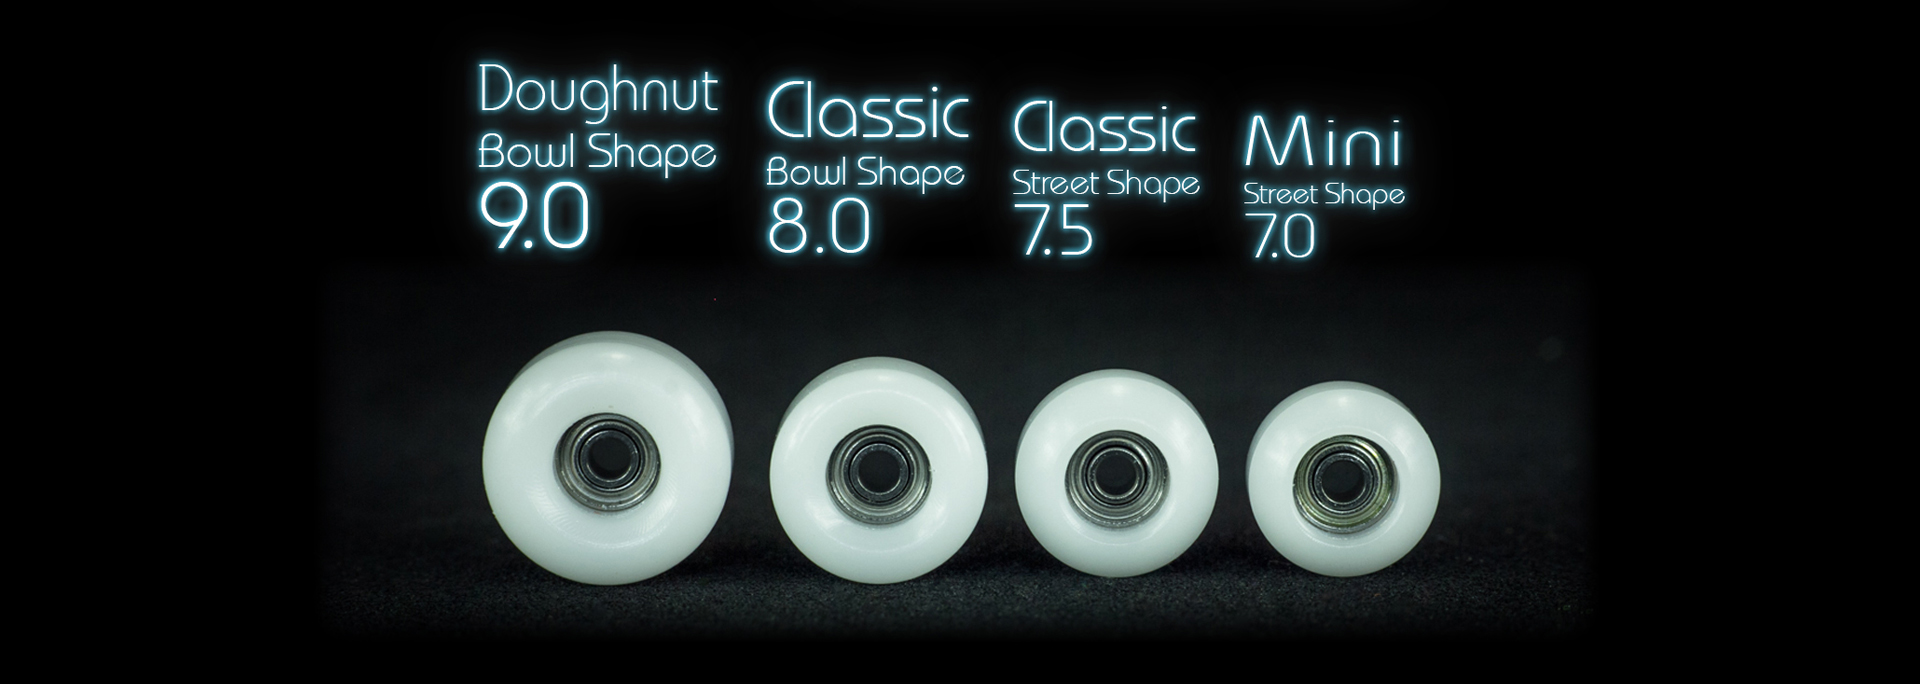 Grand GHOST wheels Chart - DOUGHNUT BOWL CLASSIC STREET Mini